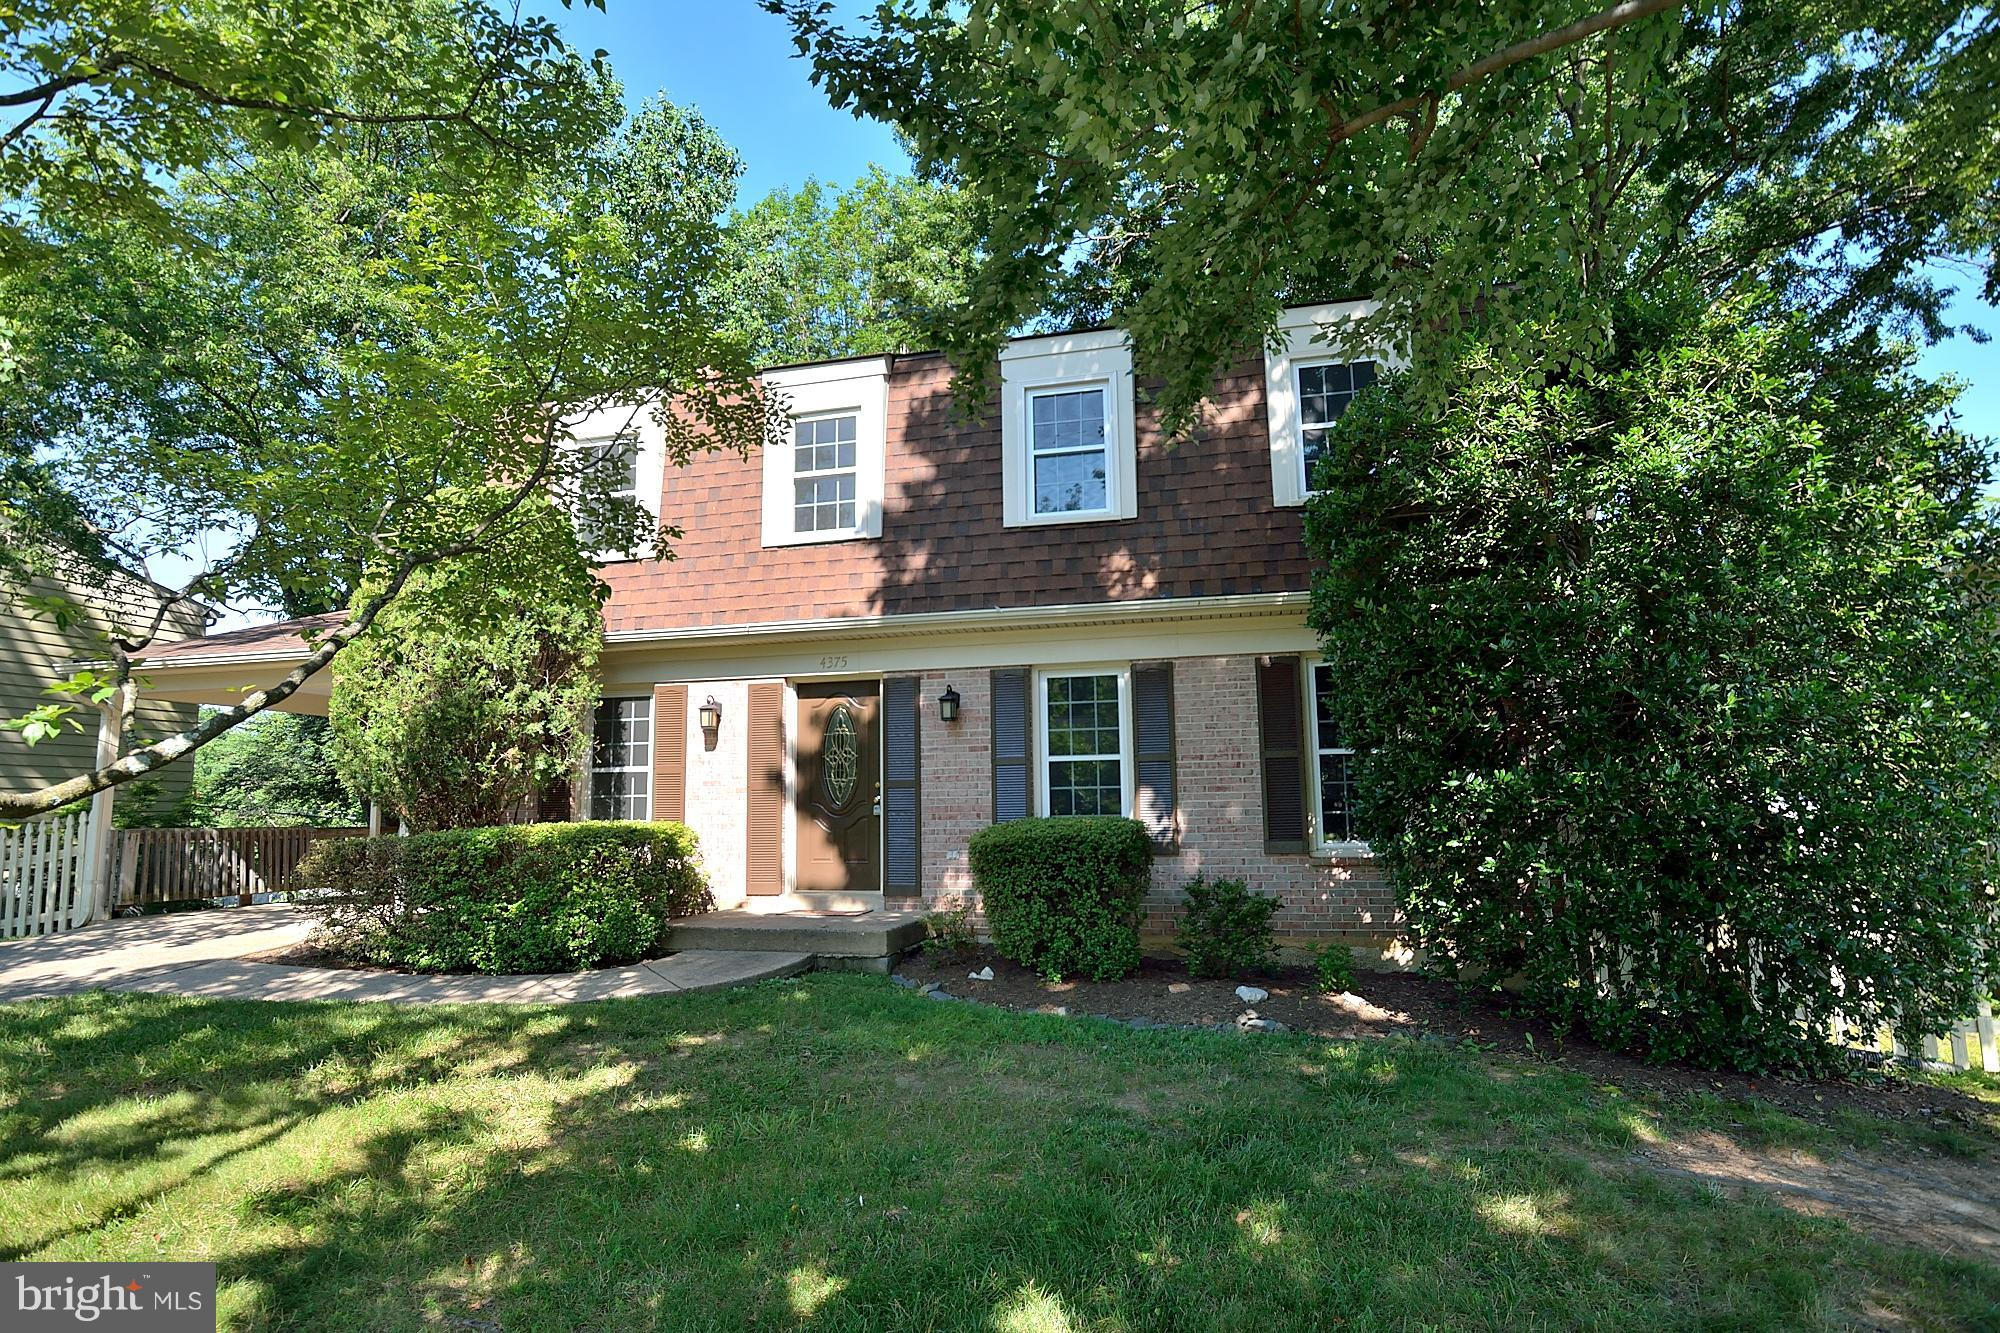 4375 FARM HOUSE LANE, FAIRFAX, VA 22032